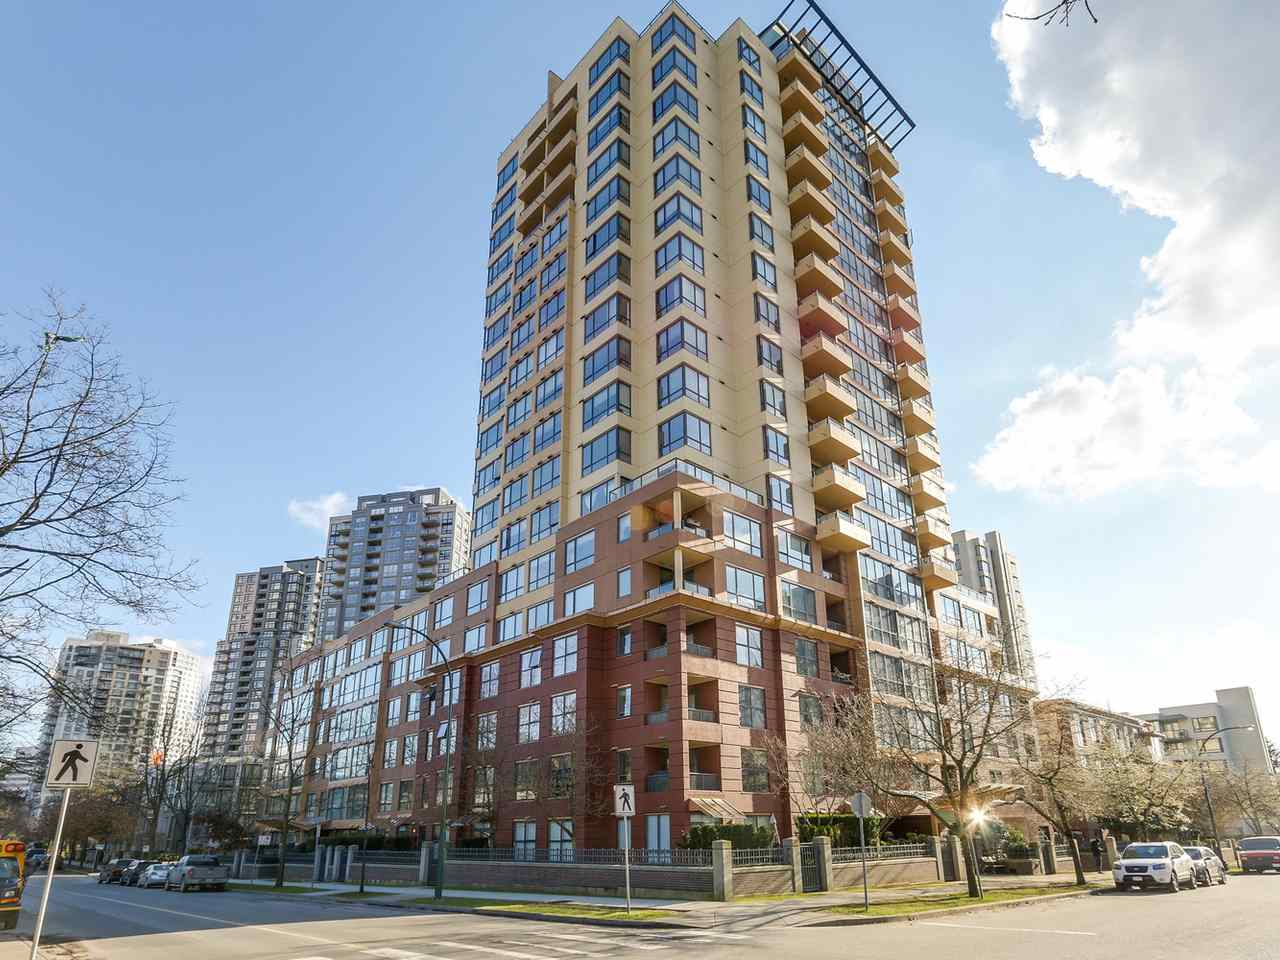 Main Photo: 809 5288 MELBOURNE Street in Vancouver: Collingwood VE Condo for sale (Vancouver East)  : MLS®# R2141801